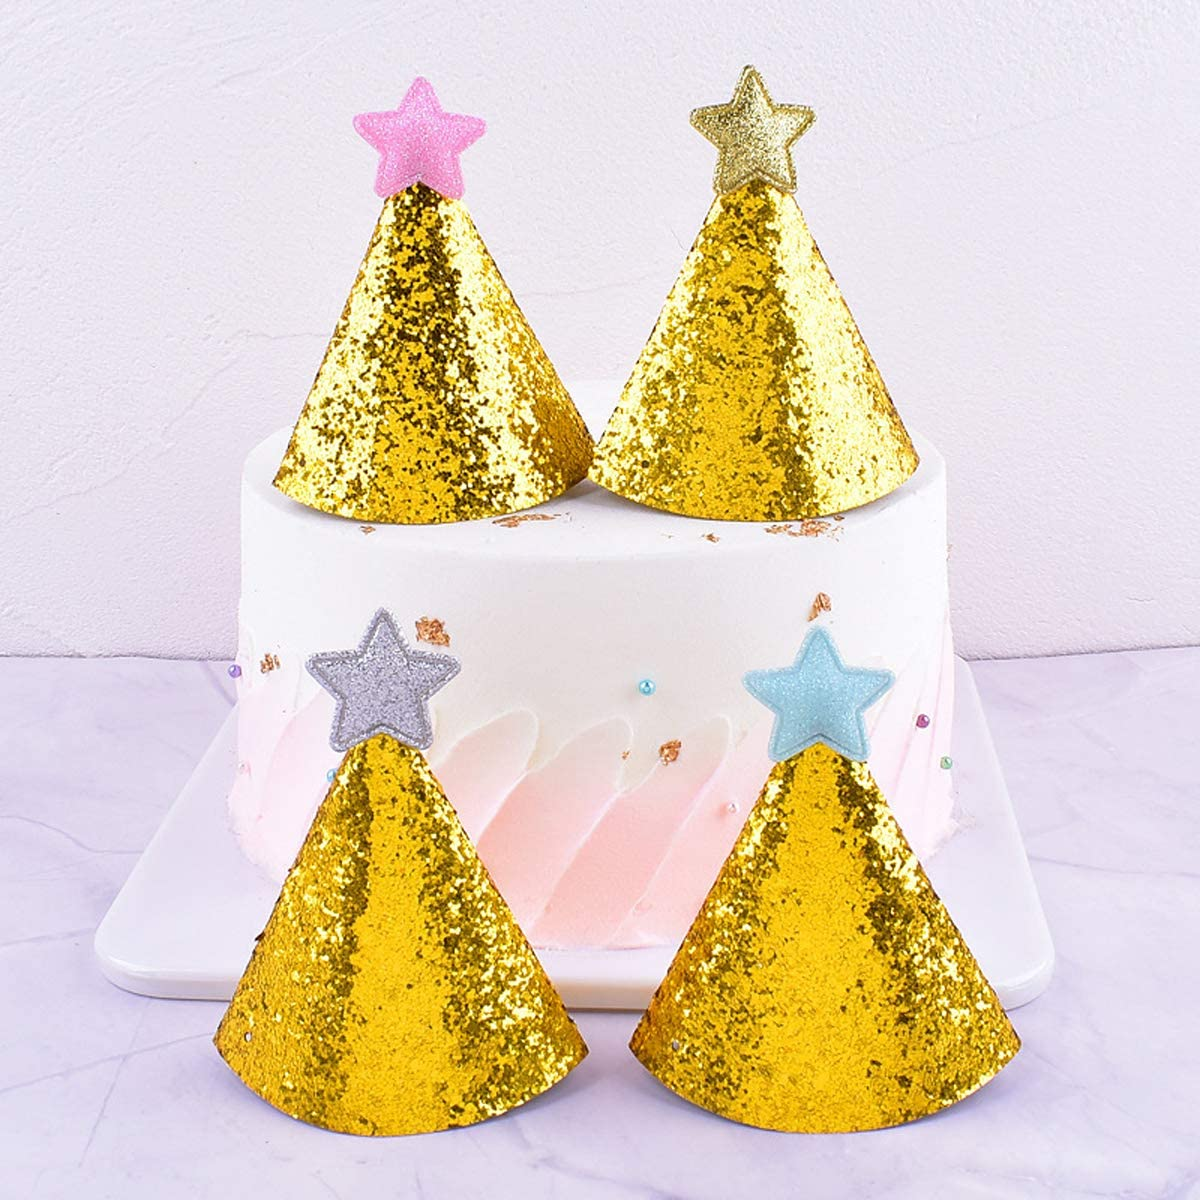 Liwein Party Cone Hats 8 pcs Glitter Cloth Birthday Cone Hats Golden Star Decorations Cake Cone Hats for Dog Boys Girls Kids Birthday Party Supplies